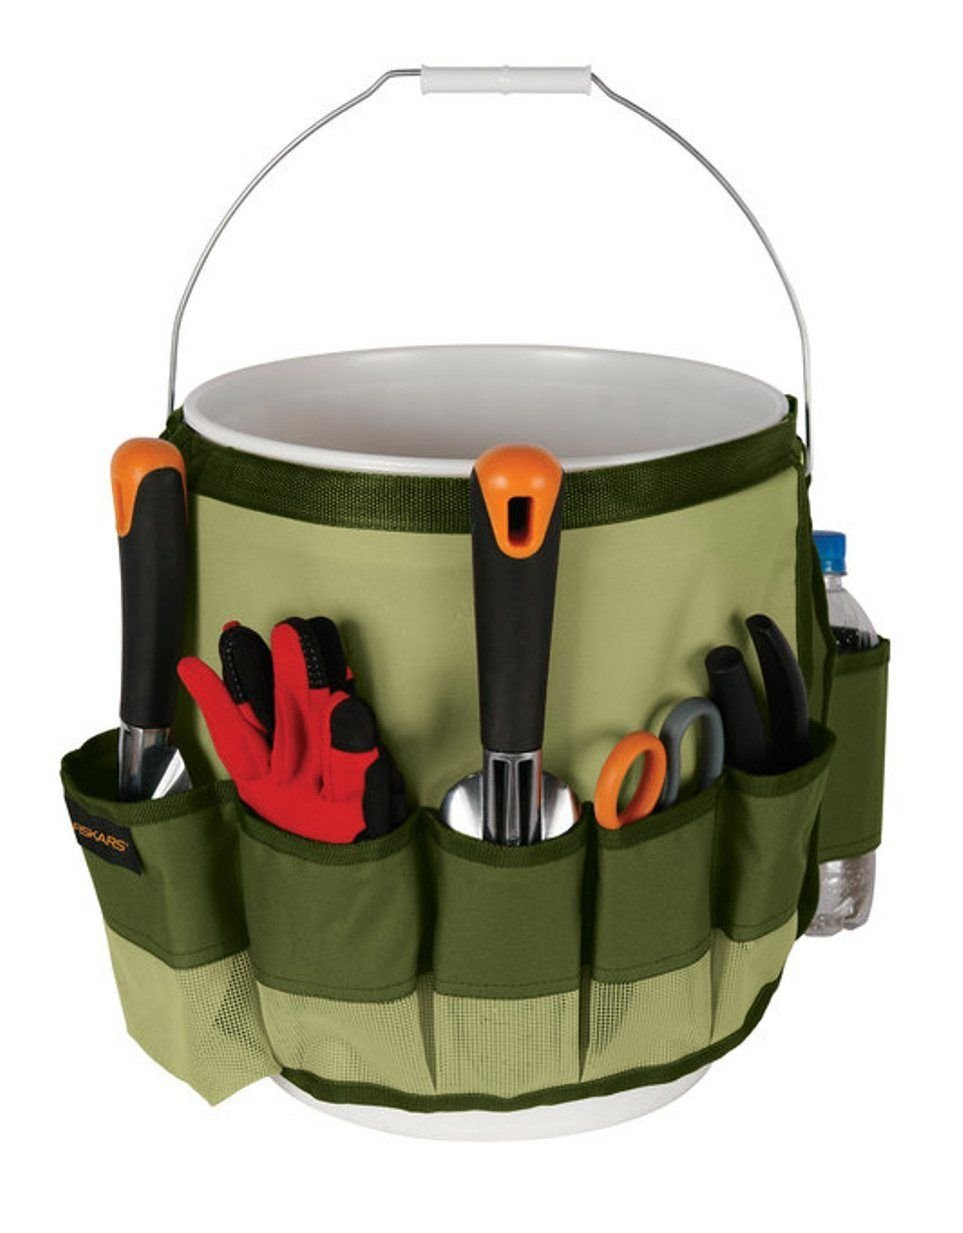 Fiskars 9424 Garden Bucket Caddy 5 Gallon Yard Tool Carrier Holder Organizer NEW ;P#O455K5/U 7RK-B213121 (1)